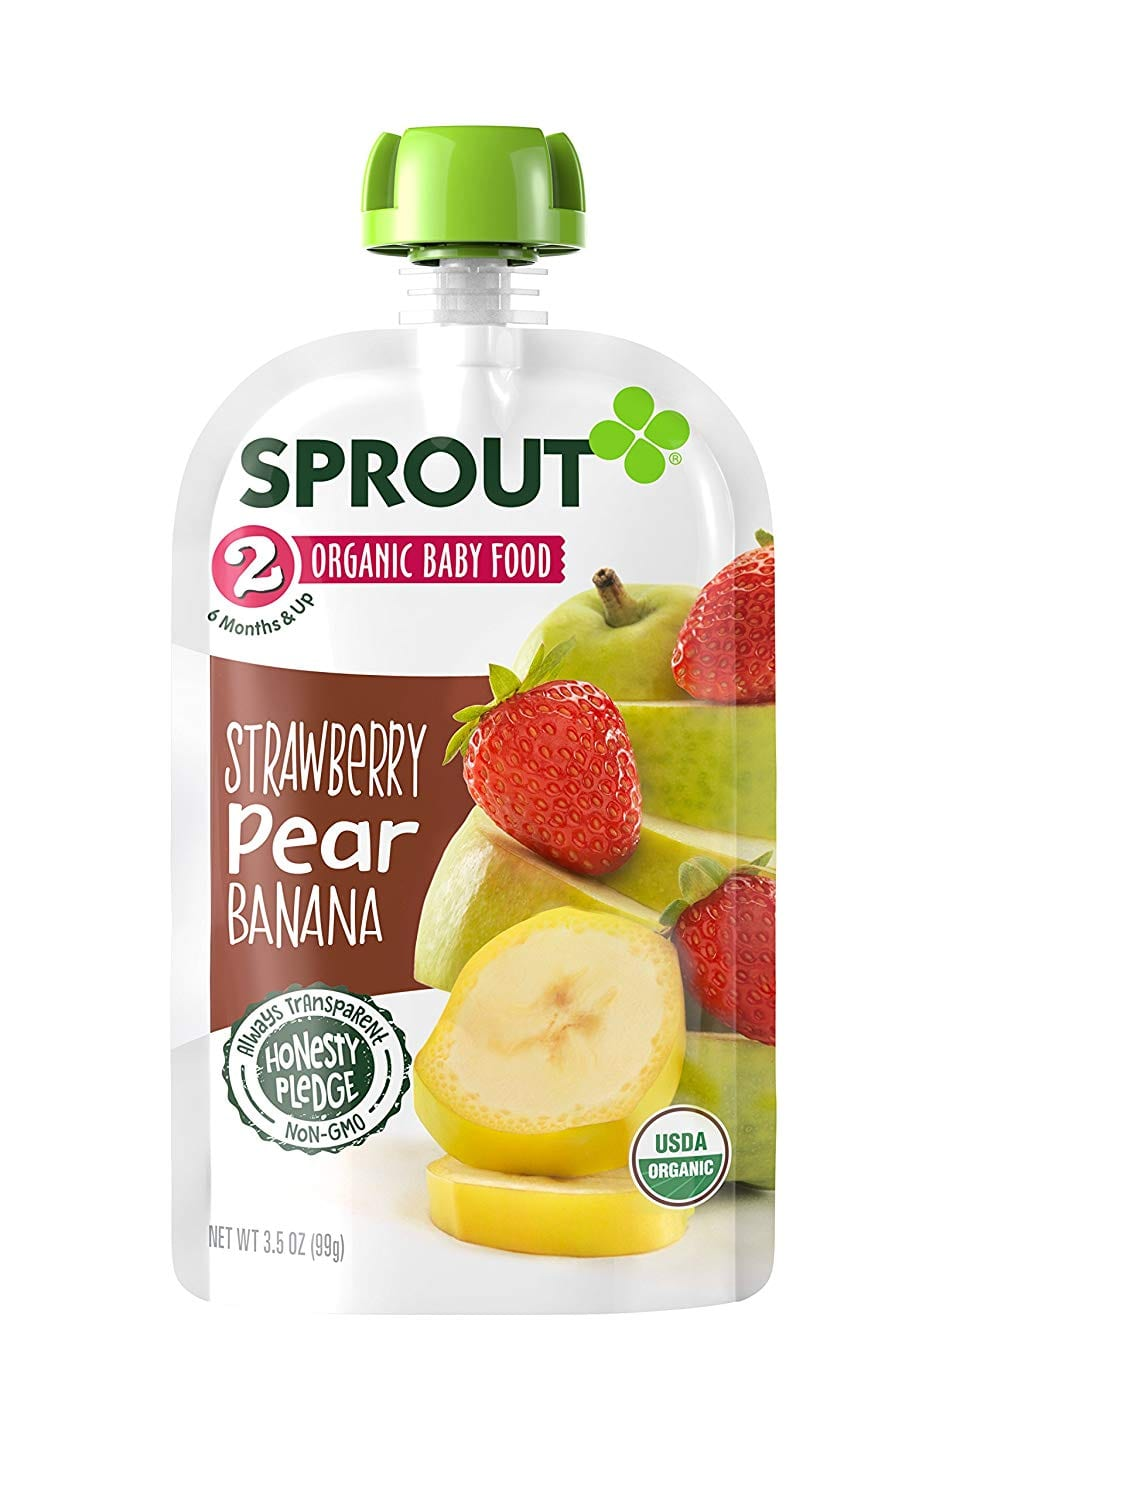 Sprout Organic Baby Food Pouches Stage 2 Sprout Baby Food, Strawberry Pear Banana, 3.5 Ounce (Pack of 12); $8.99 via S&S